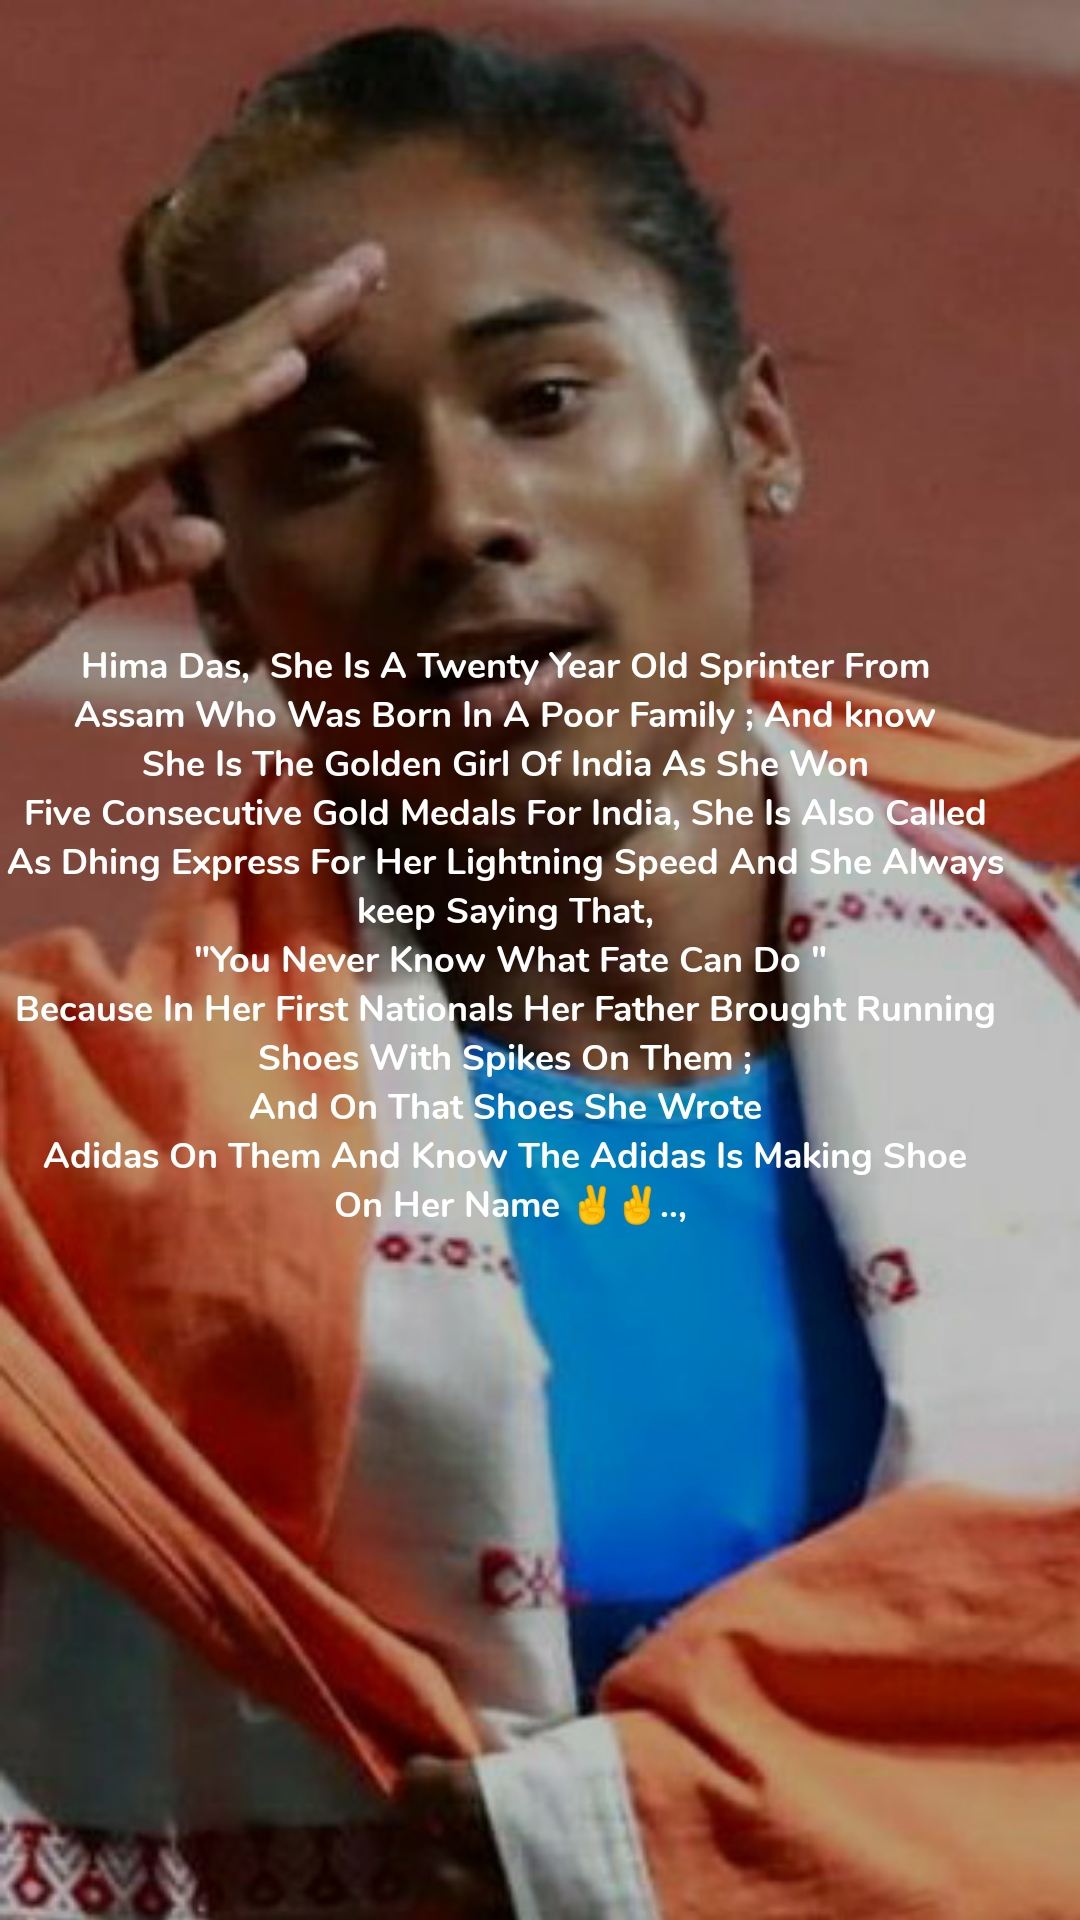 """Hima Das,  She Is A Twenty Year Old Sprinter From  Assam Who Was Born In A Poor Family ; And know  She Is The Golden Girl Of India As She Won  Five Consecutive Gold Medals For India, She Is Also Called  As Dhing Express For Her Lightning Speed And She Always  keep Saying That,  """"You Never Know What Fate Can Do """" Because In Her First Nationals Her Father Brought Running  Shoes With Spikes On Them ;  And On That Shoes She Wrote  Adidas On Them And Know The Adidas Is Making Shoe  On Her Name ✌️✌️..,"""